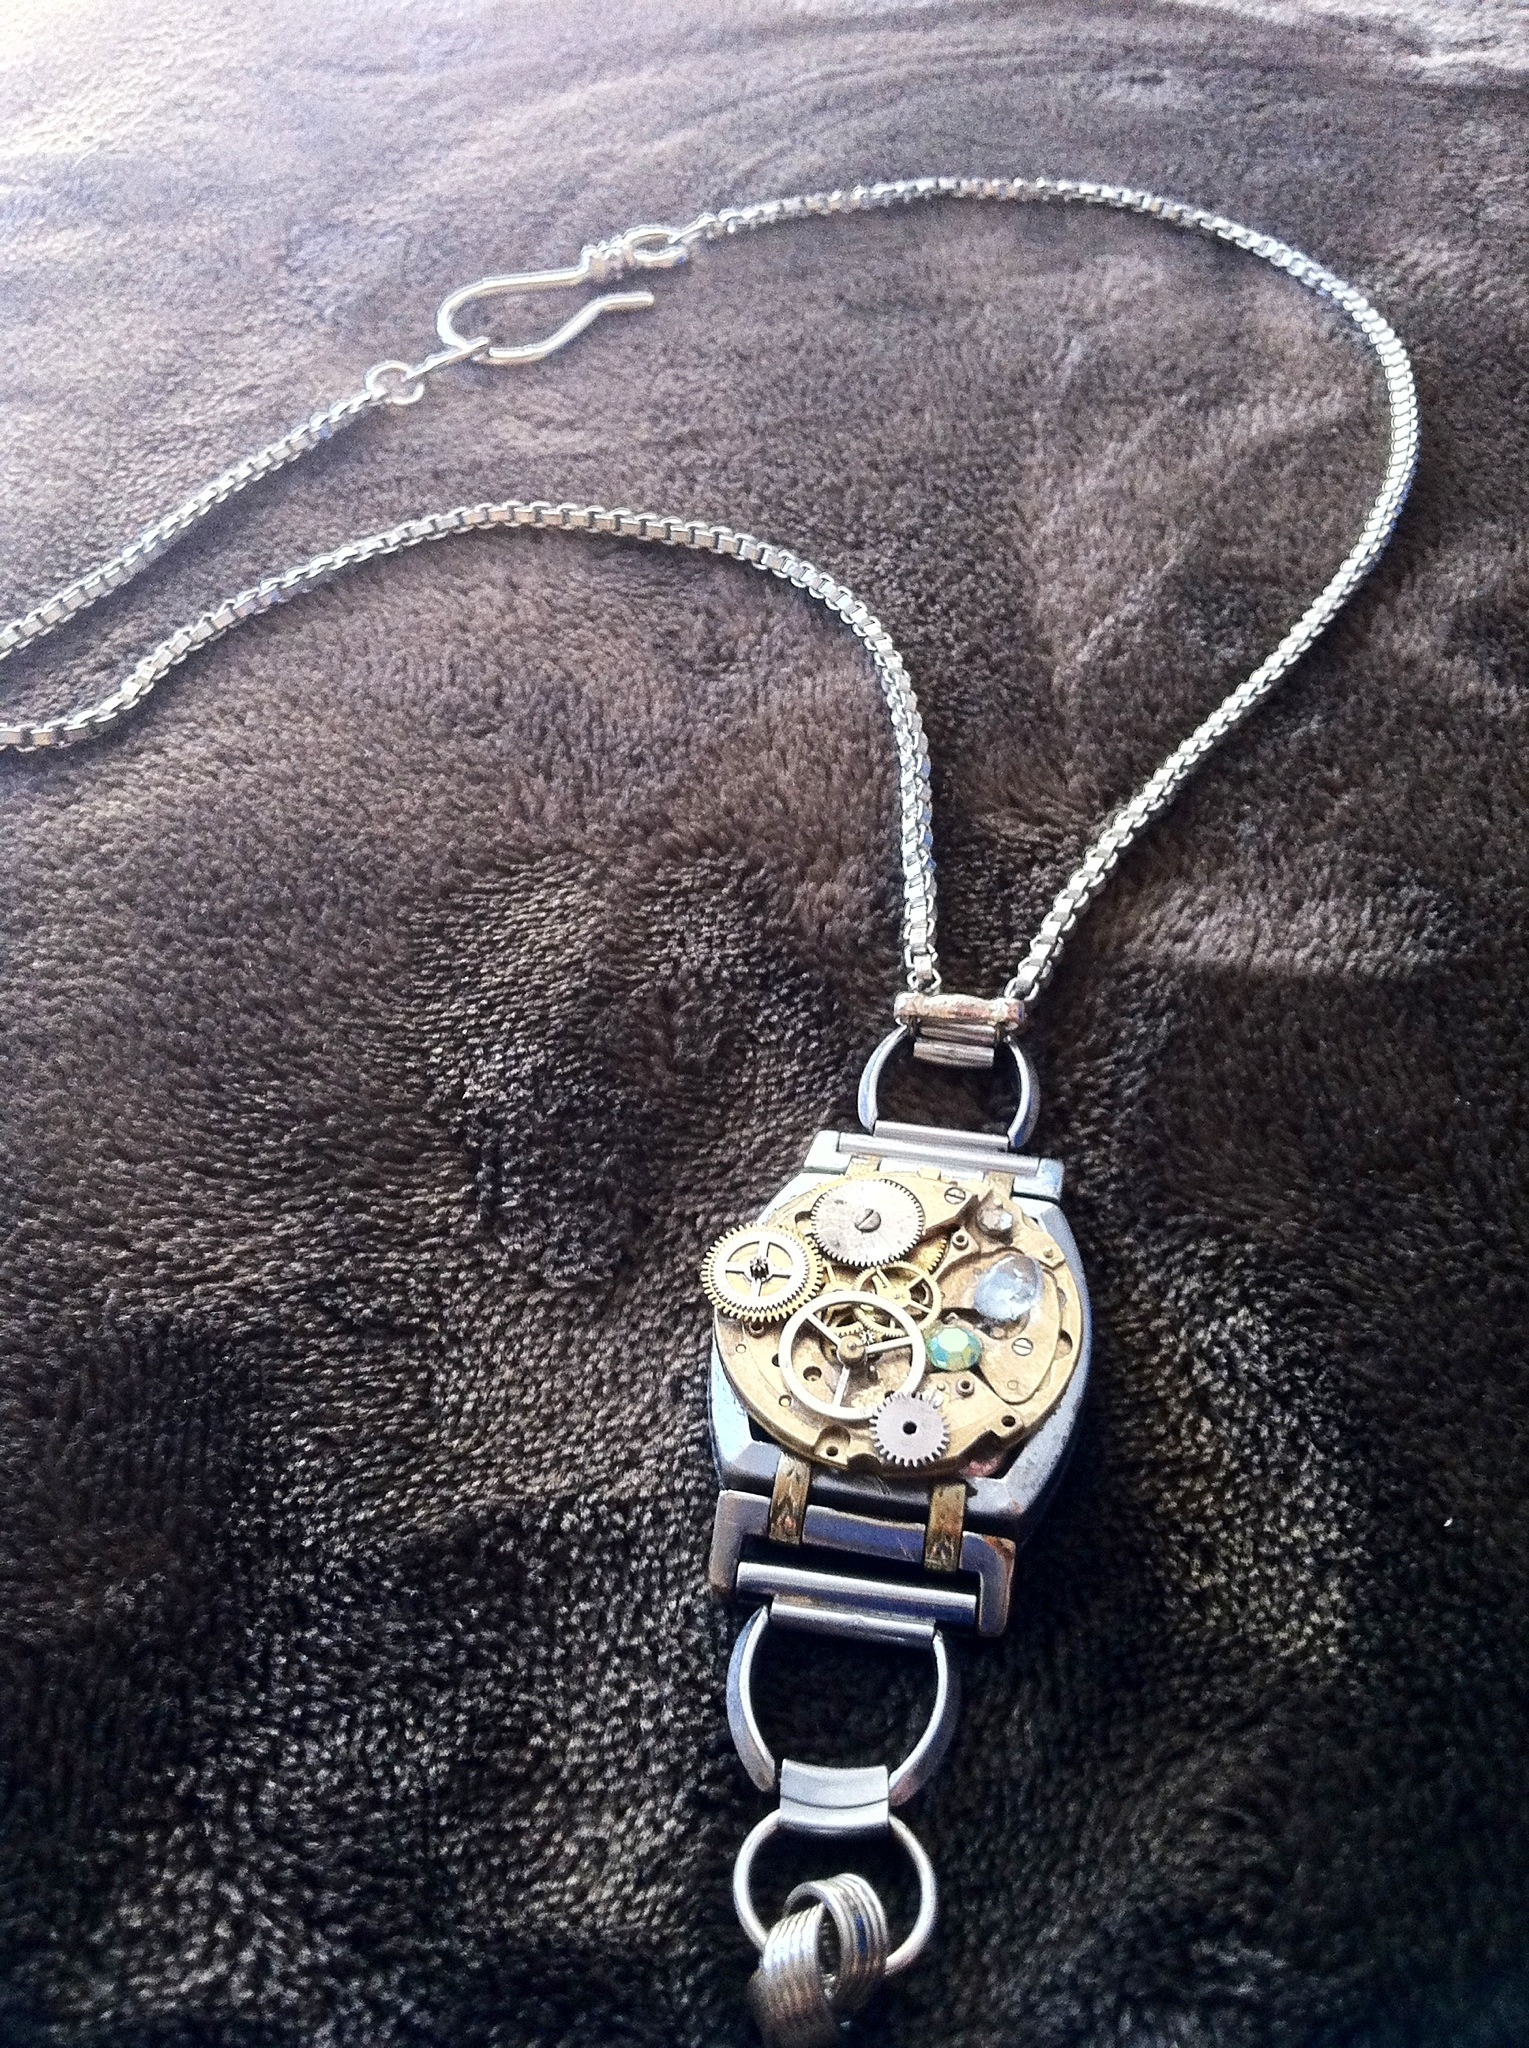 Steampunk Jewelry From Box Of Old Watches